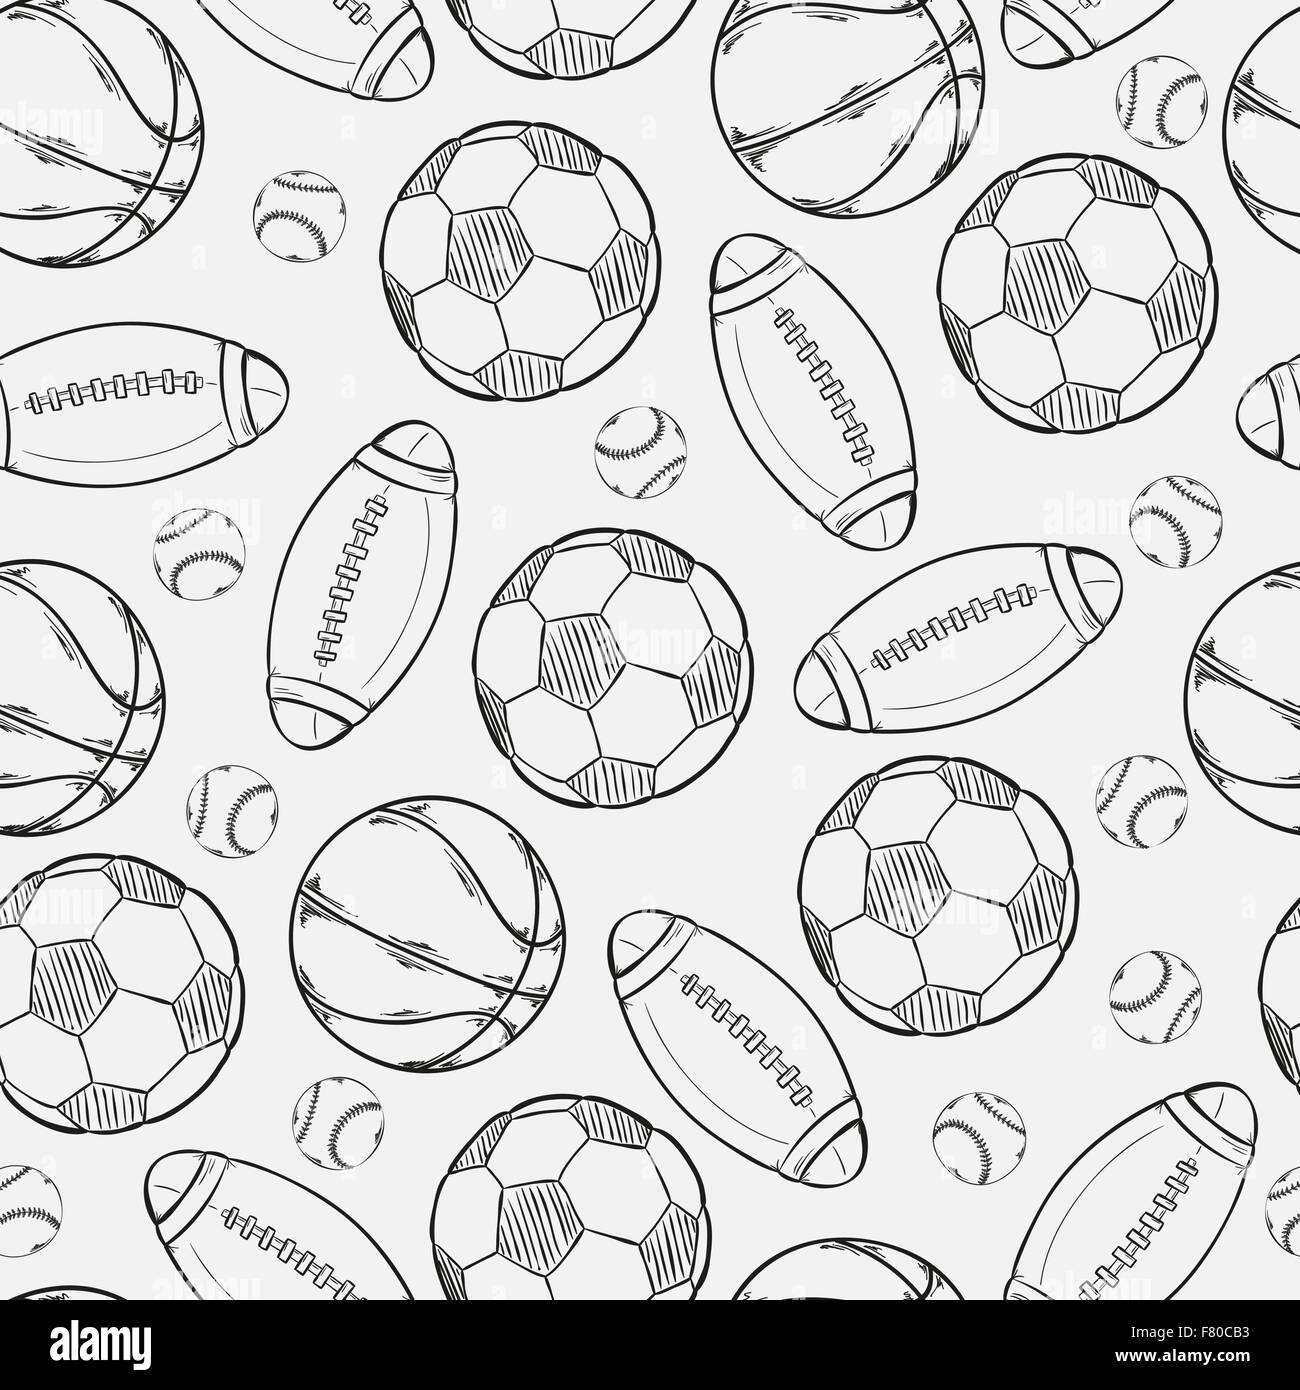 sketch of different balls - Stock Image